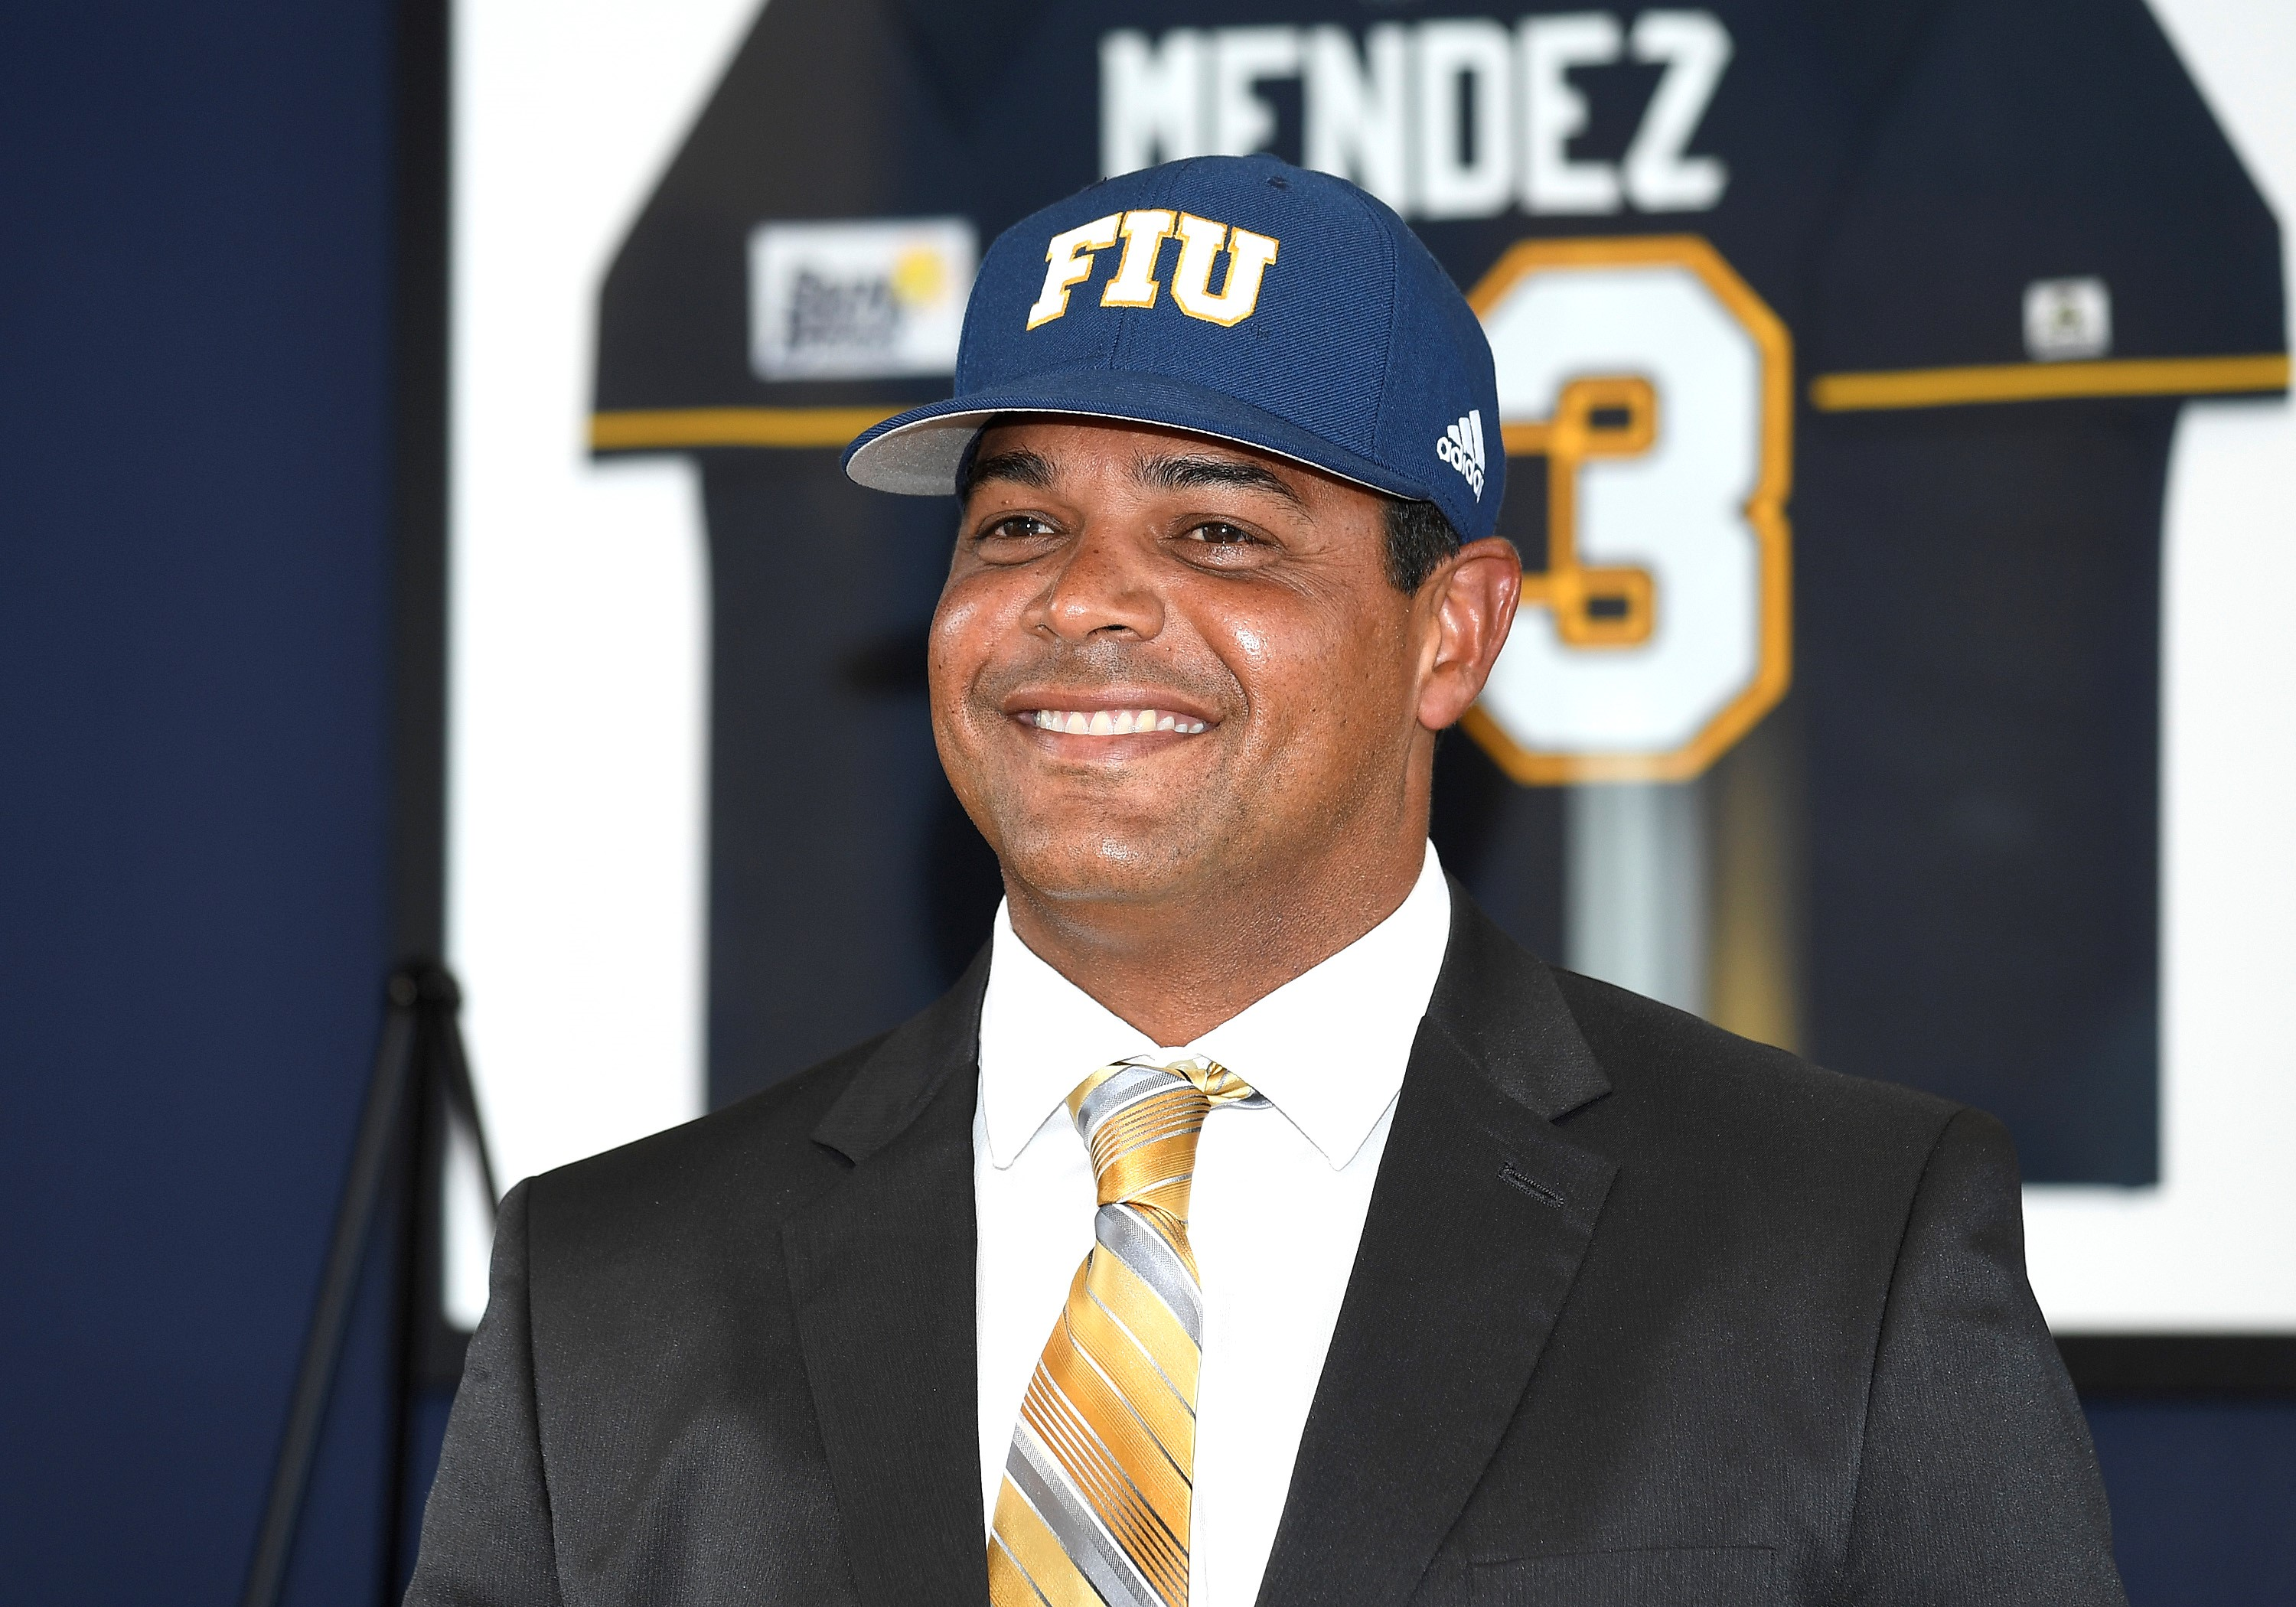 Mervyl Melendez was all smiles as he was introduced as the new head coach for FIU baseball at a press conference June 28. Photo by Richard Lewis.